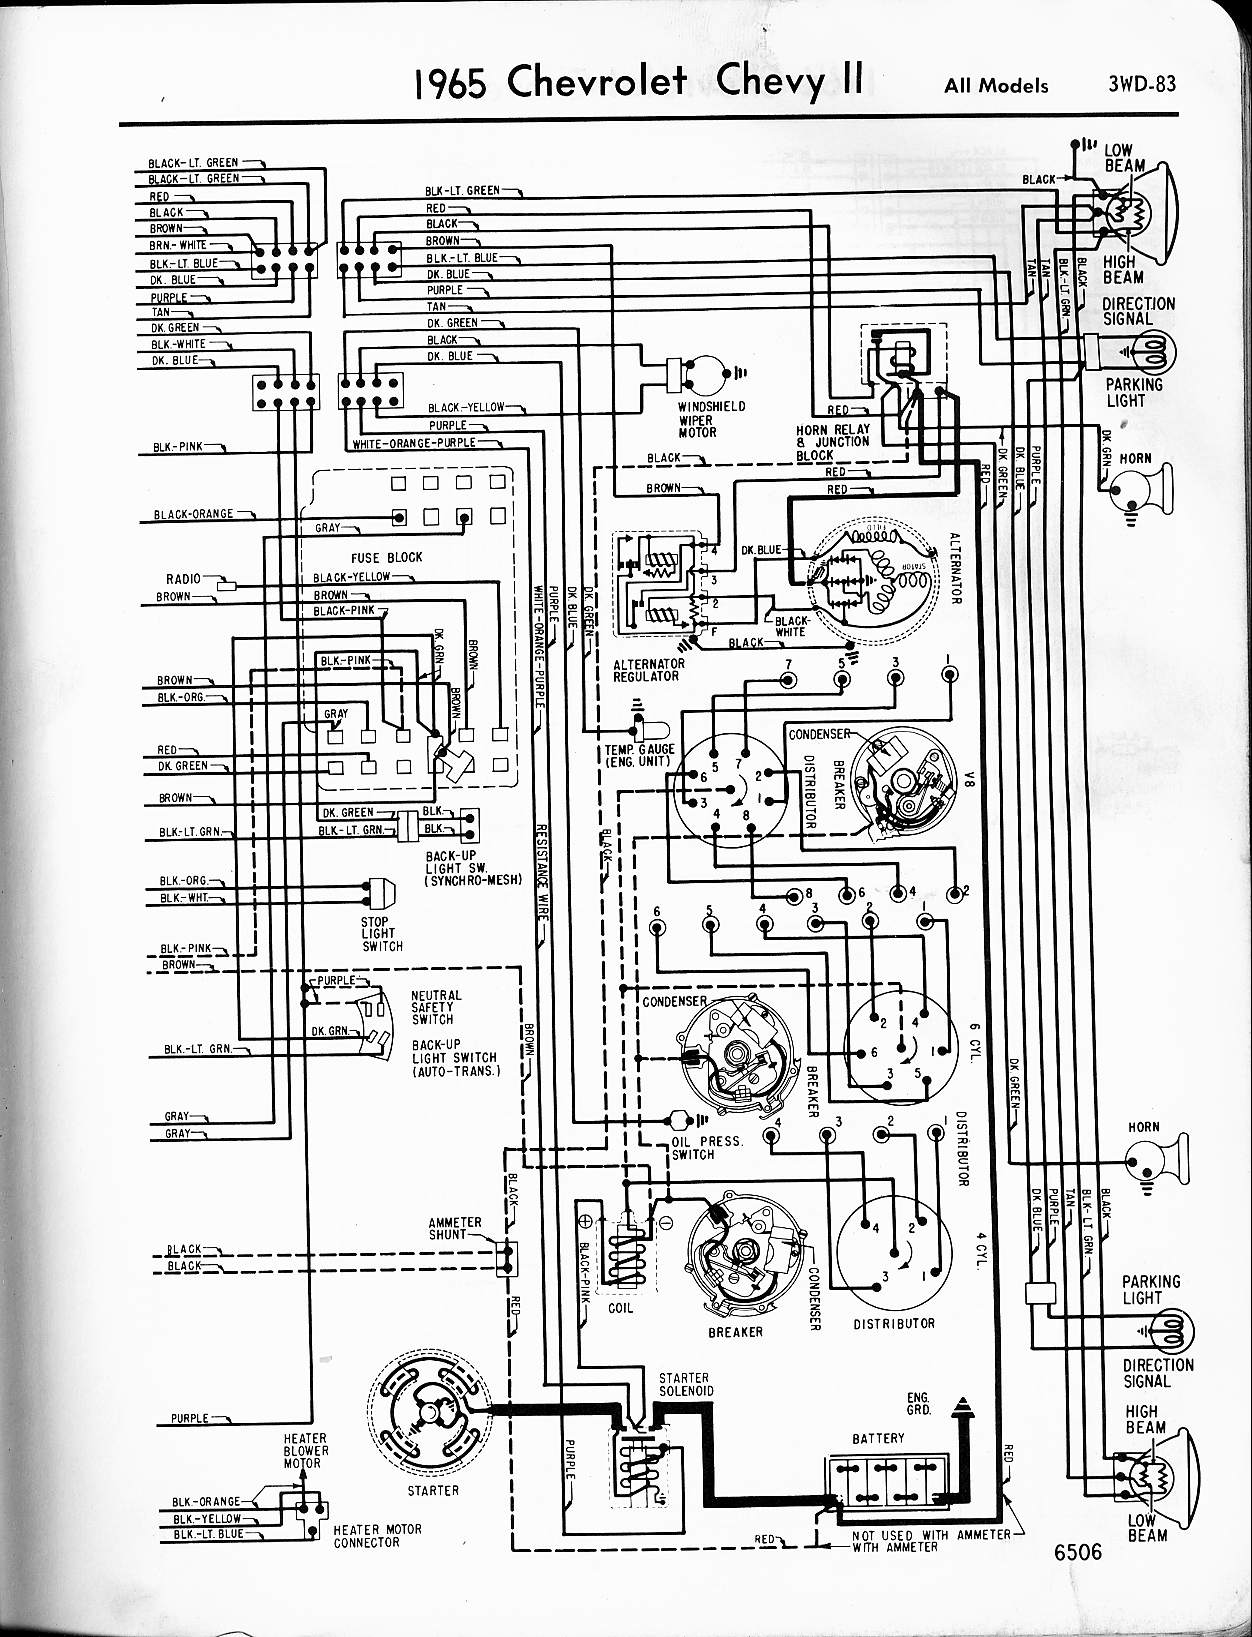 1965 Chevy II Wiring Diagram: Figure A Figure B